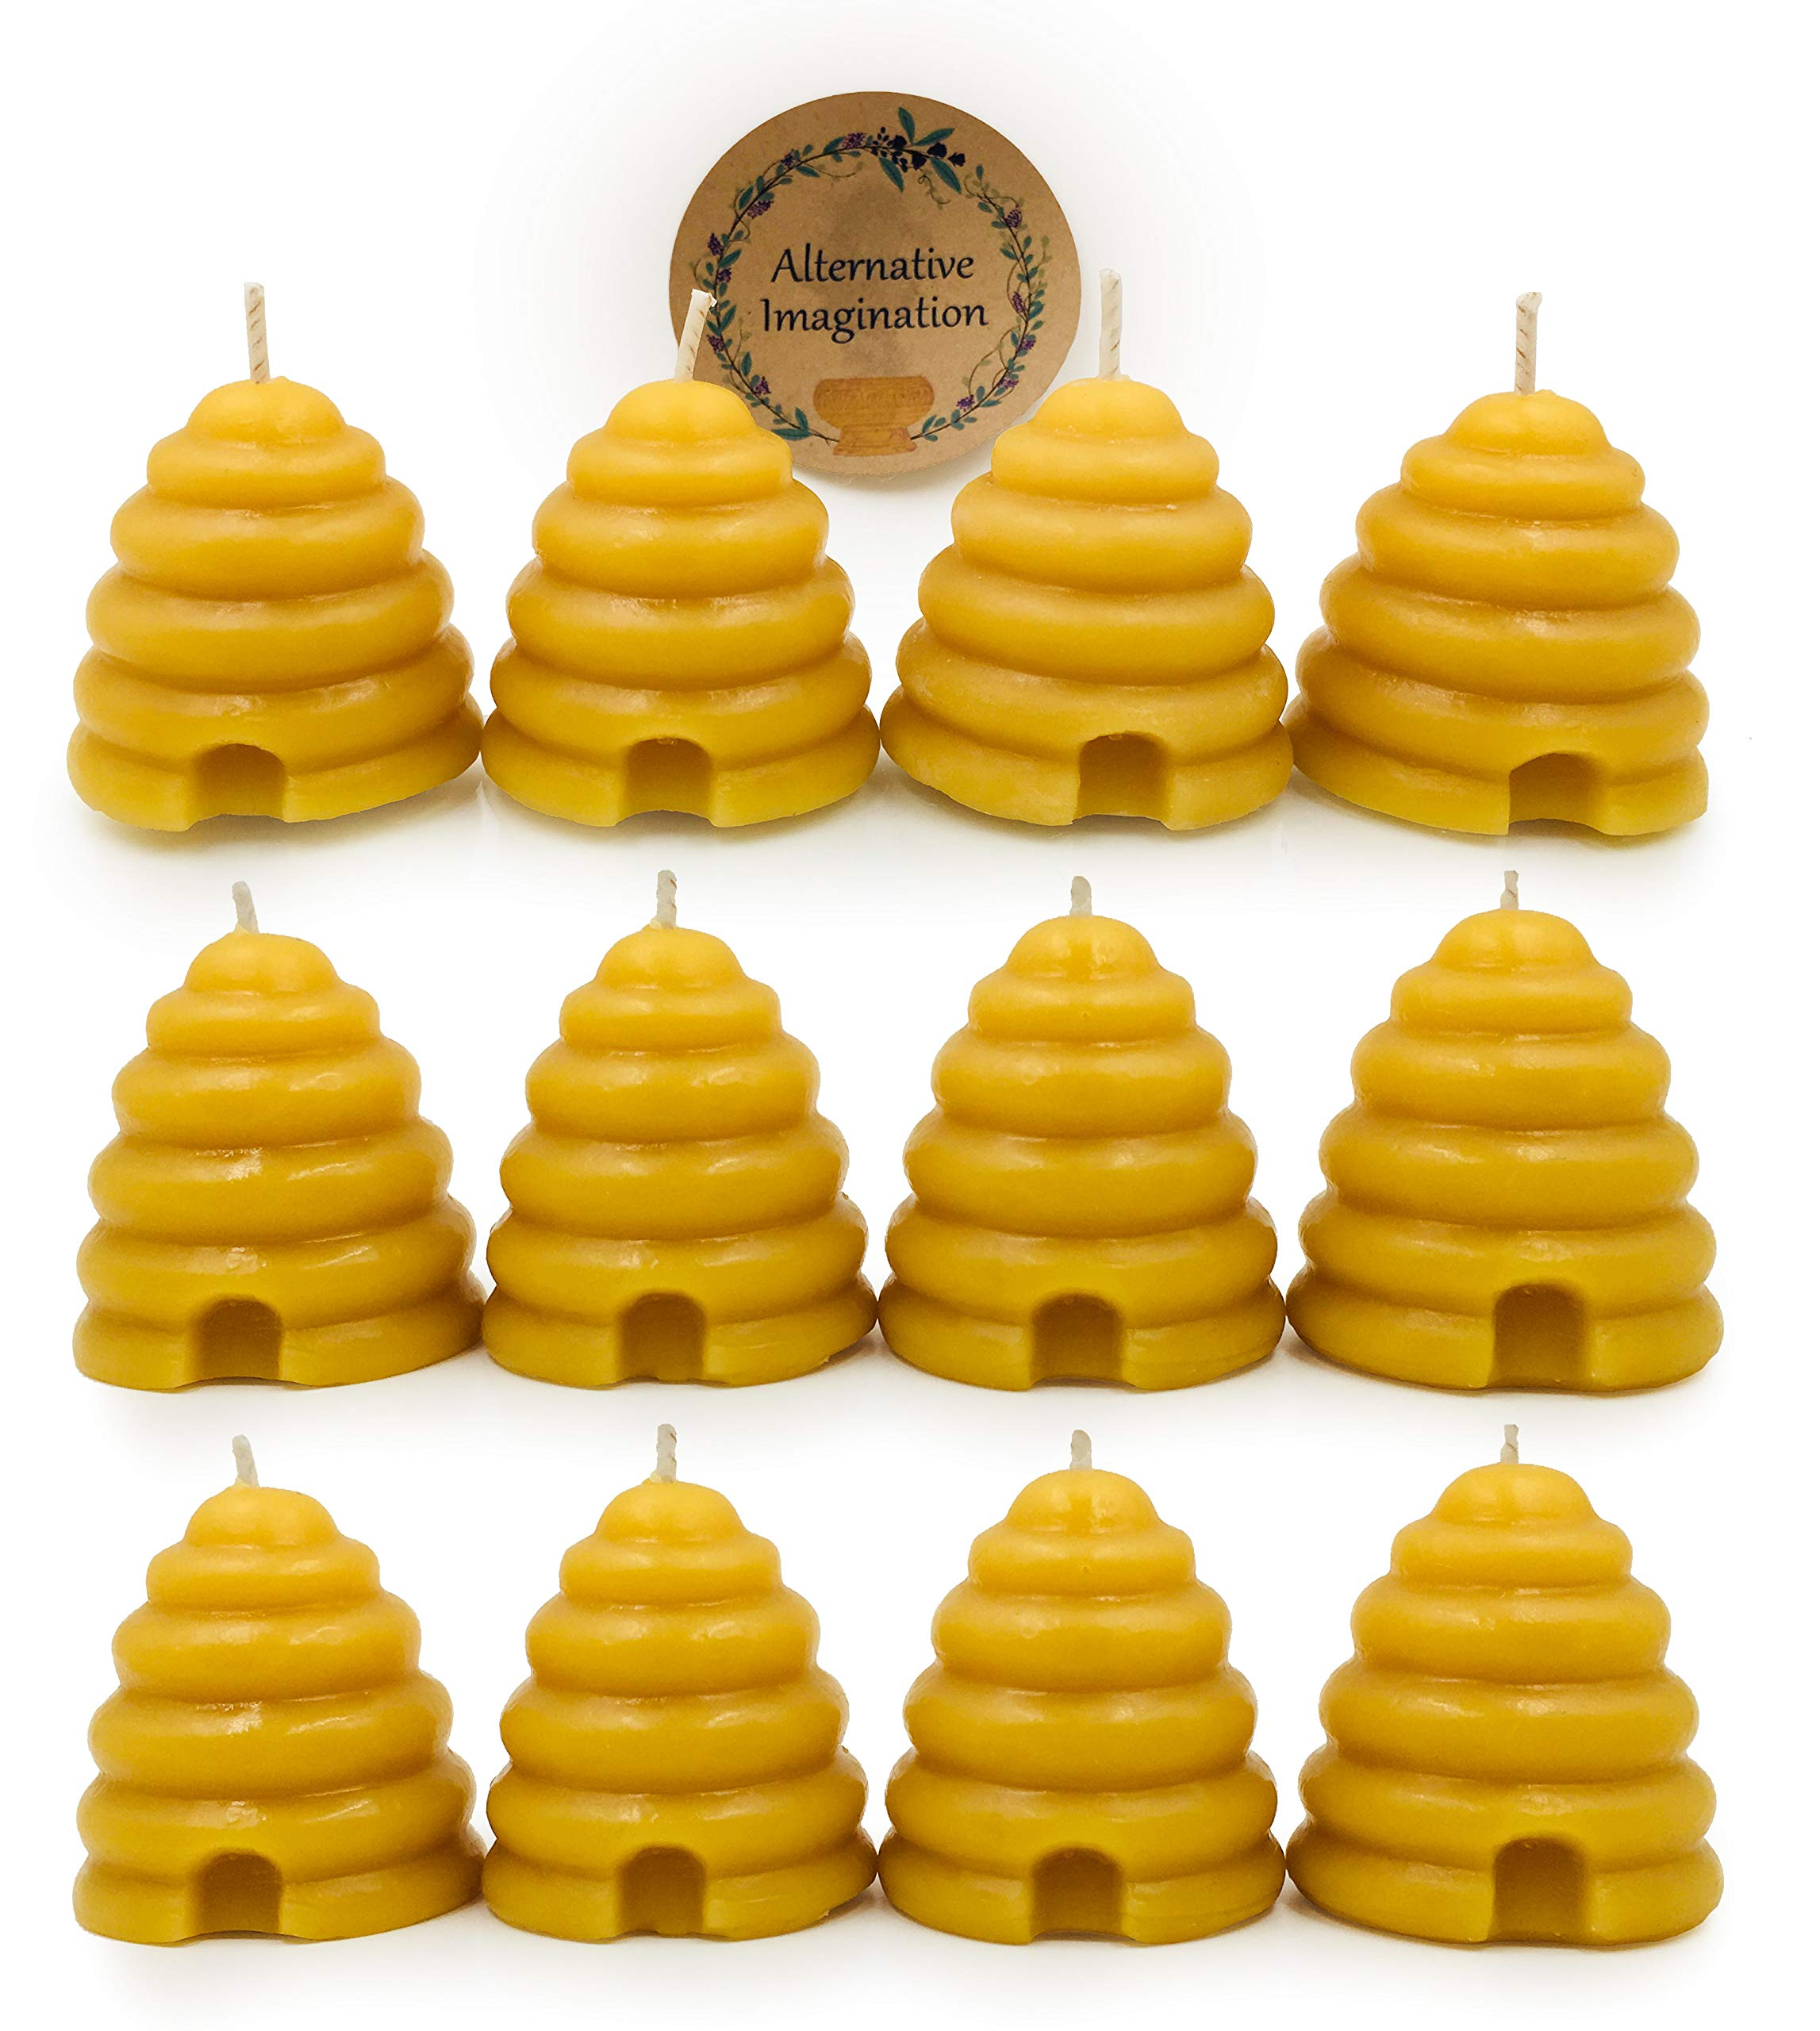 Alternative Imagination Beehive Votive Candle, Hand Poured Beeswax (Pack of 12)